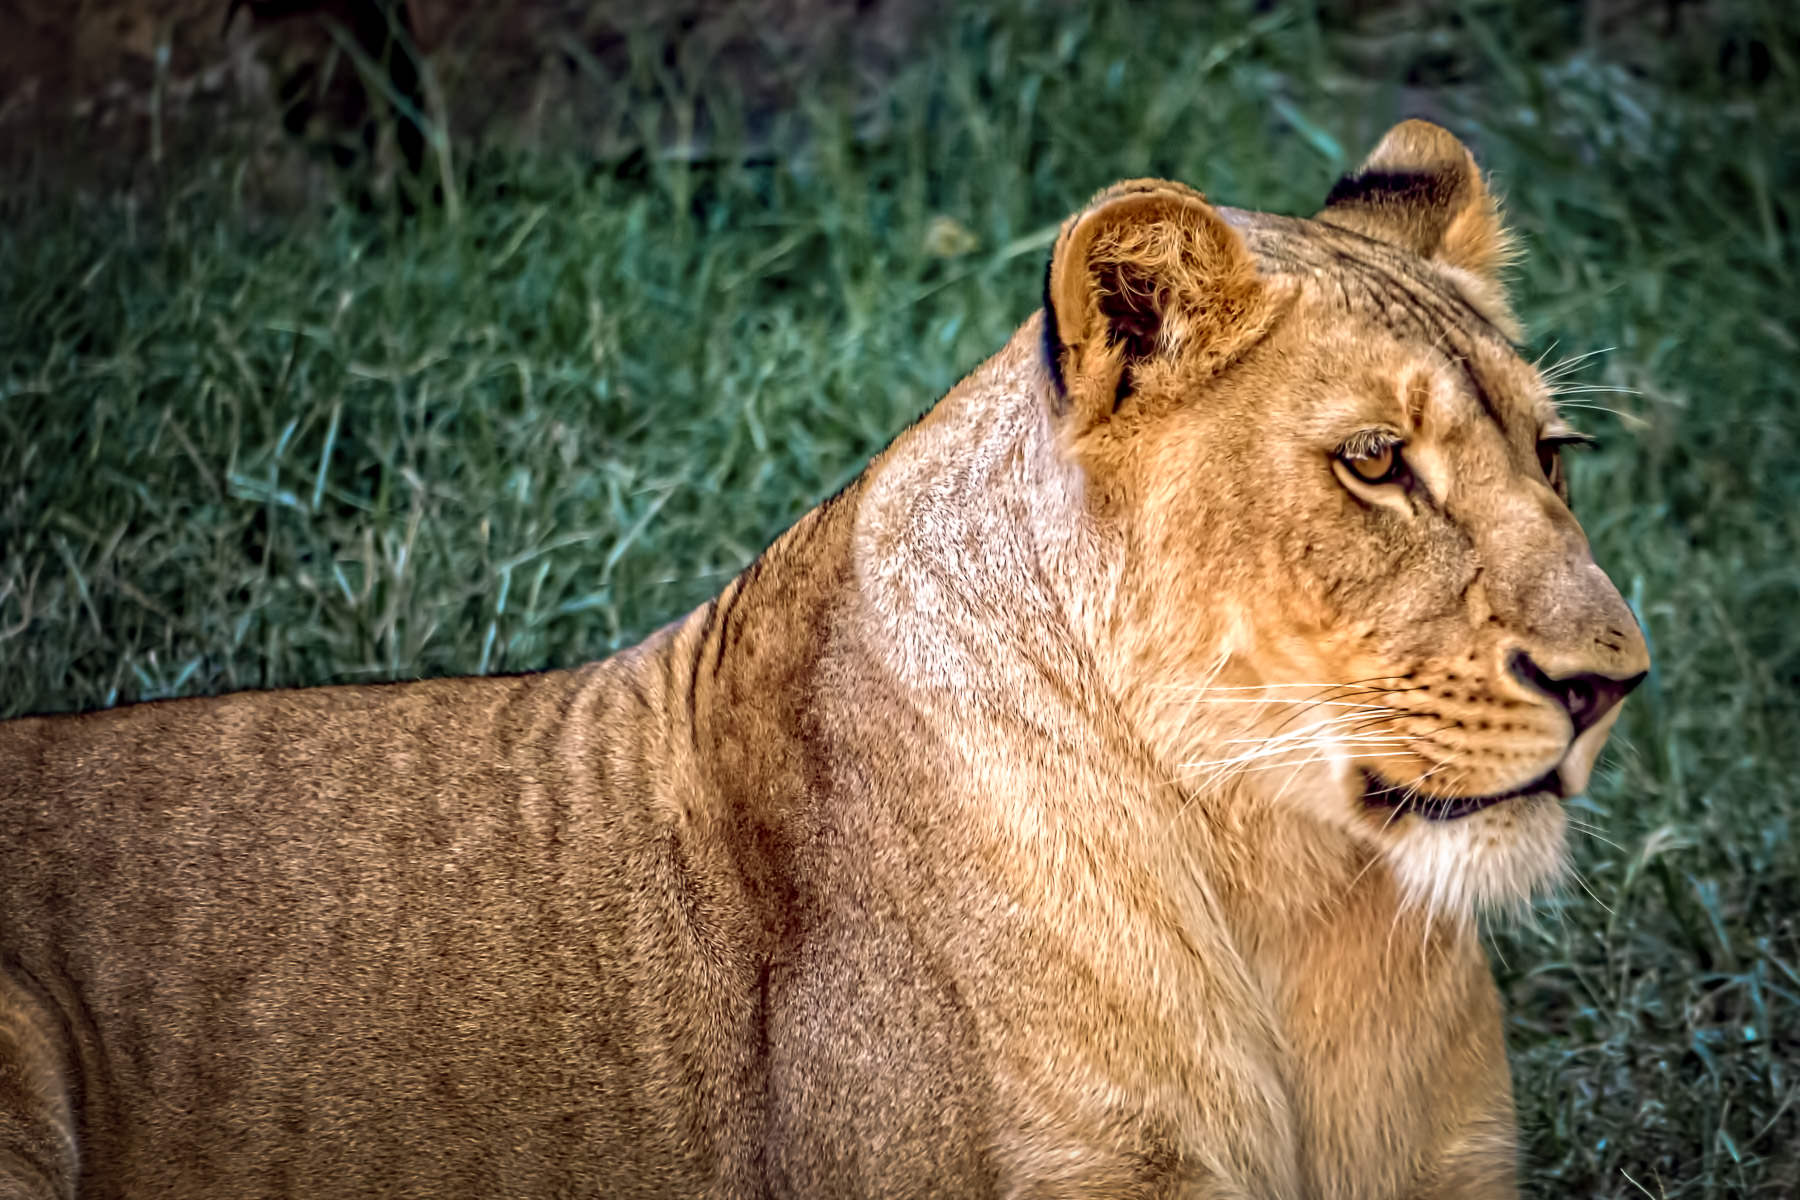 A lioness spotted at the Fort Worth Zoo, Fort Worth, Texas.